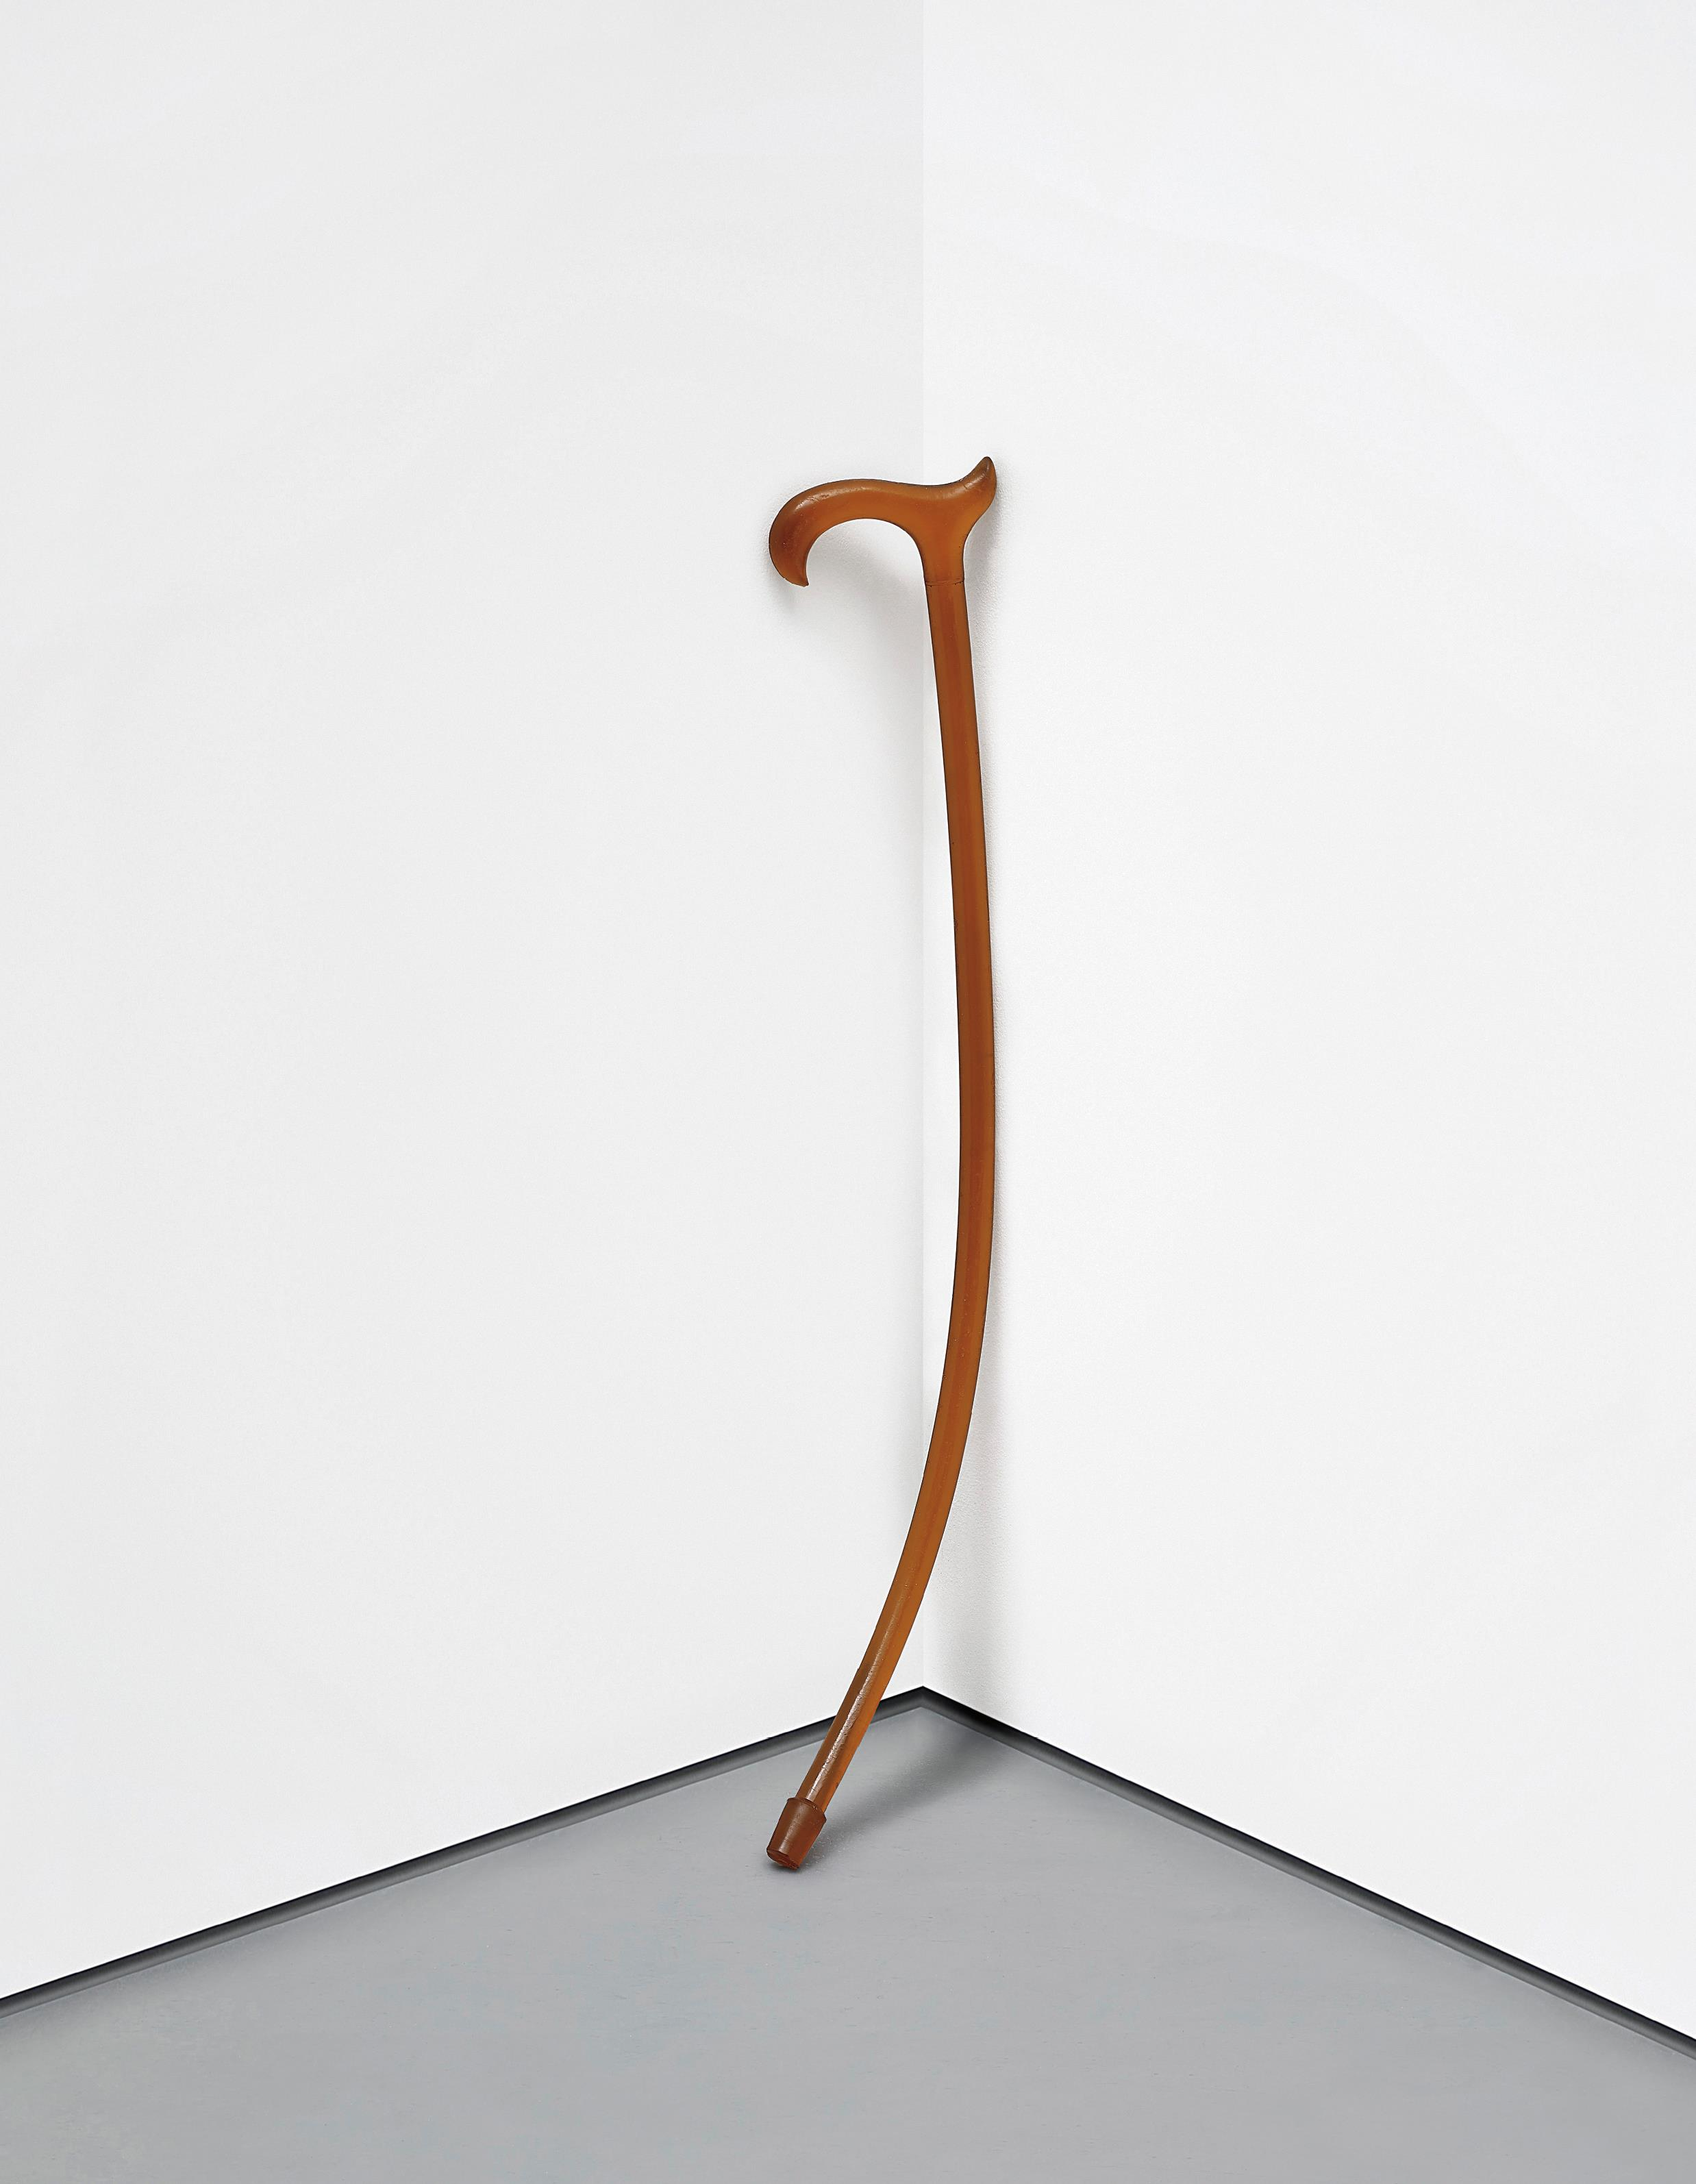 Mona Hatoum-Untitled (Stick)-2011